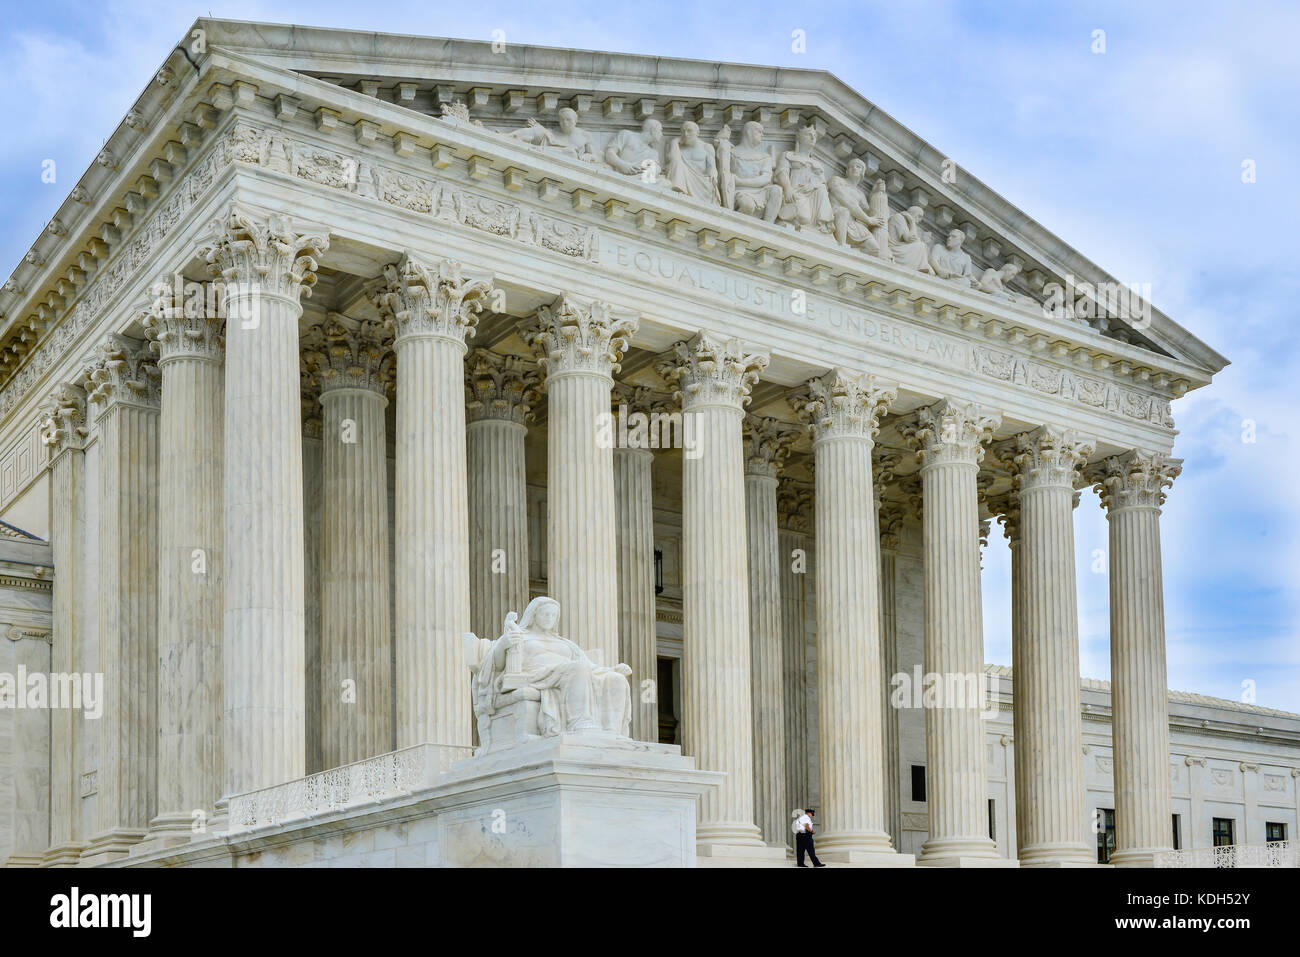 Security guard walks in front of entrance to the US Supreme Court Building in Washington, DC, USA - Stock Image